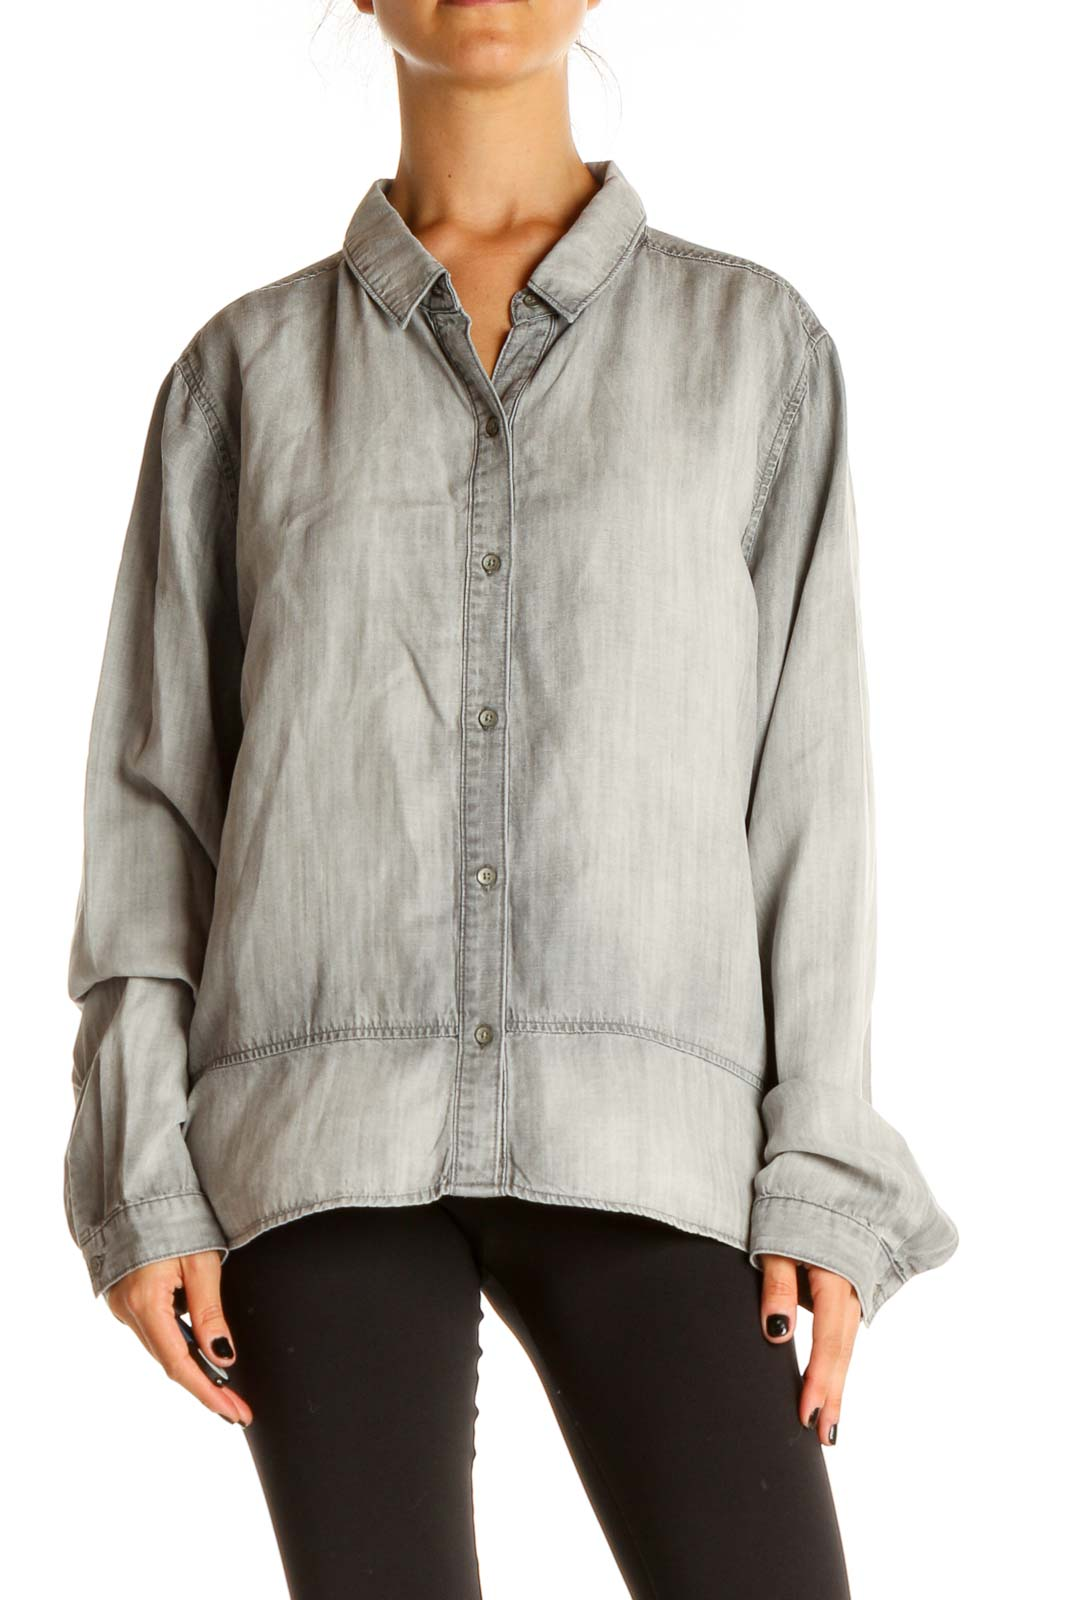 Gray All Day Wear Shirt Front